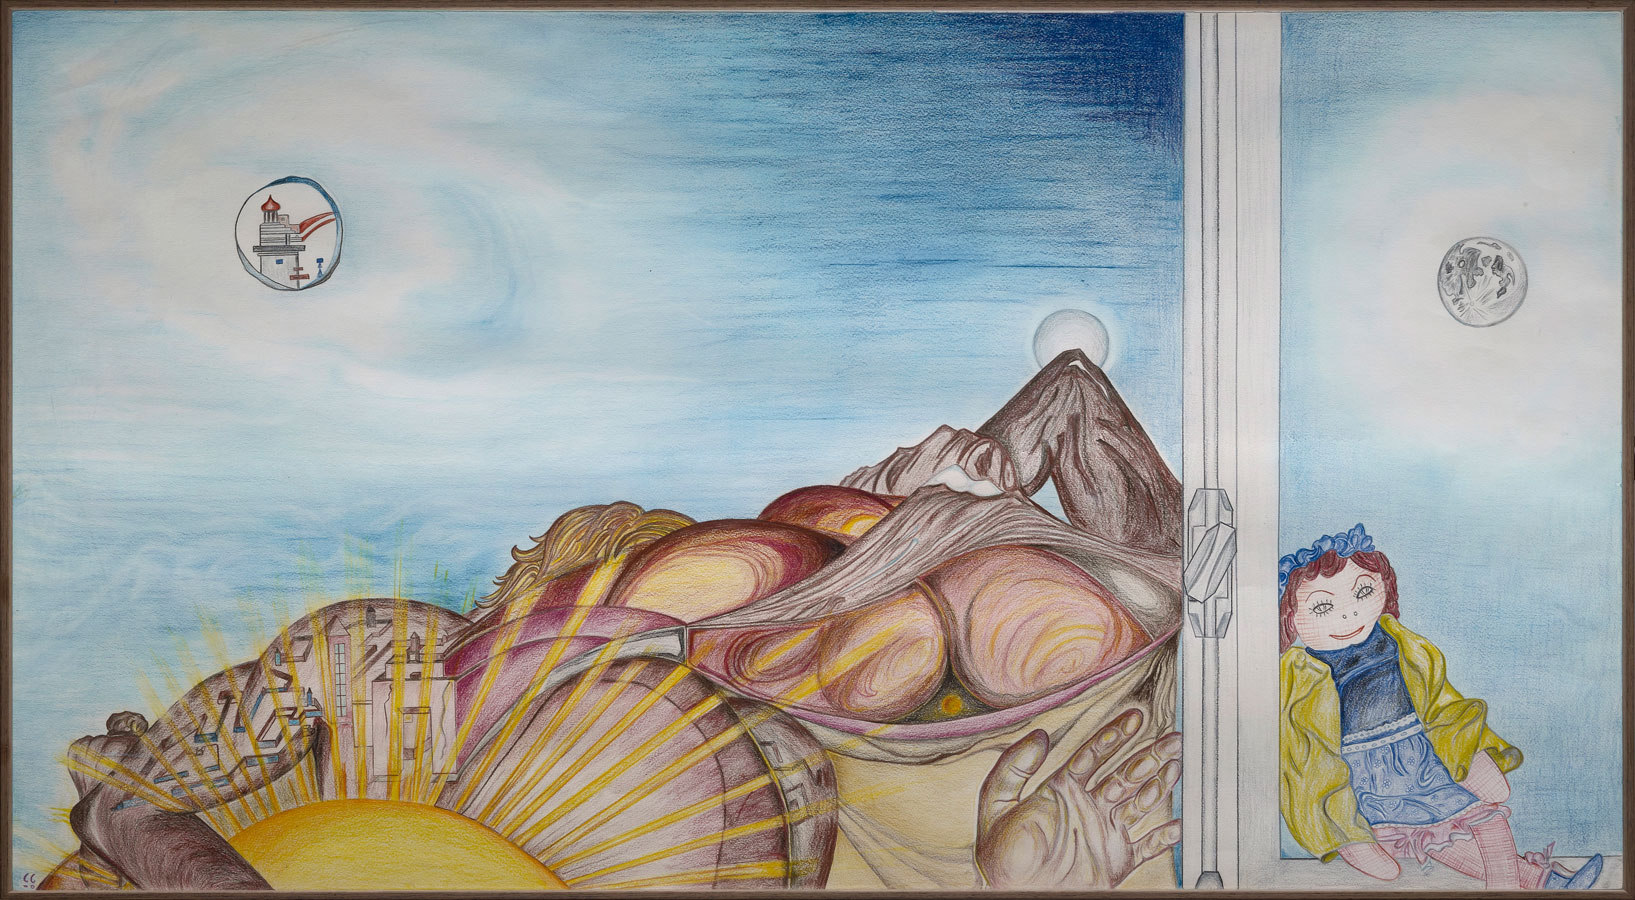 APOLLON ET JULIETTE | 1984, crayons de couleurs, 110 x 60 cm | Photo Erwan Masson